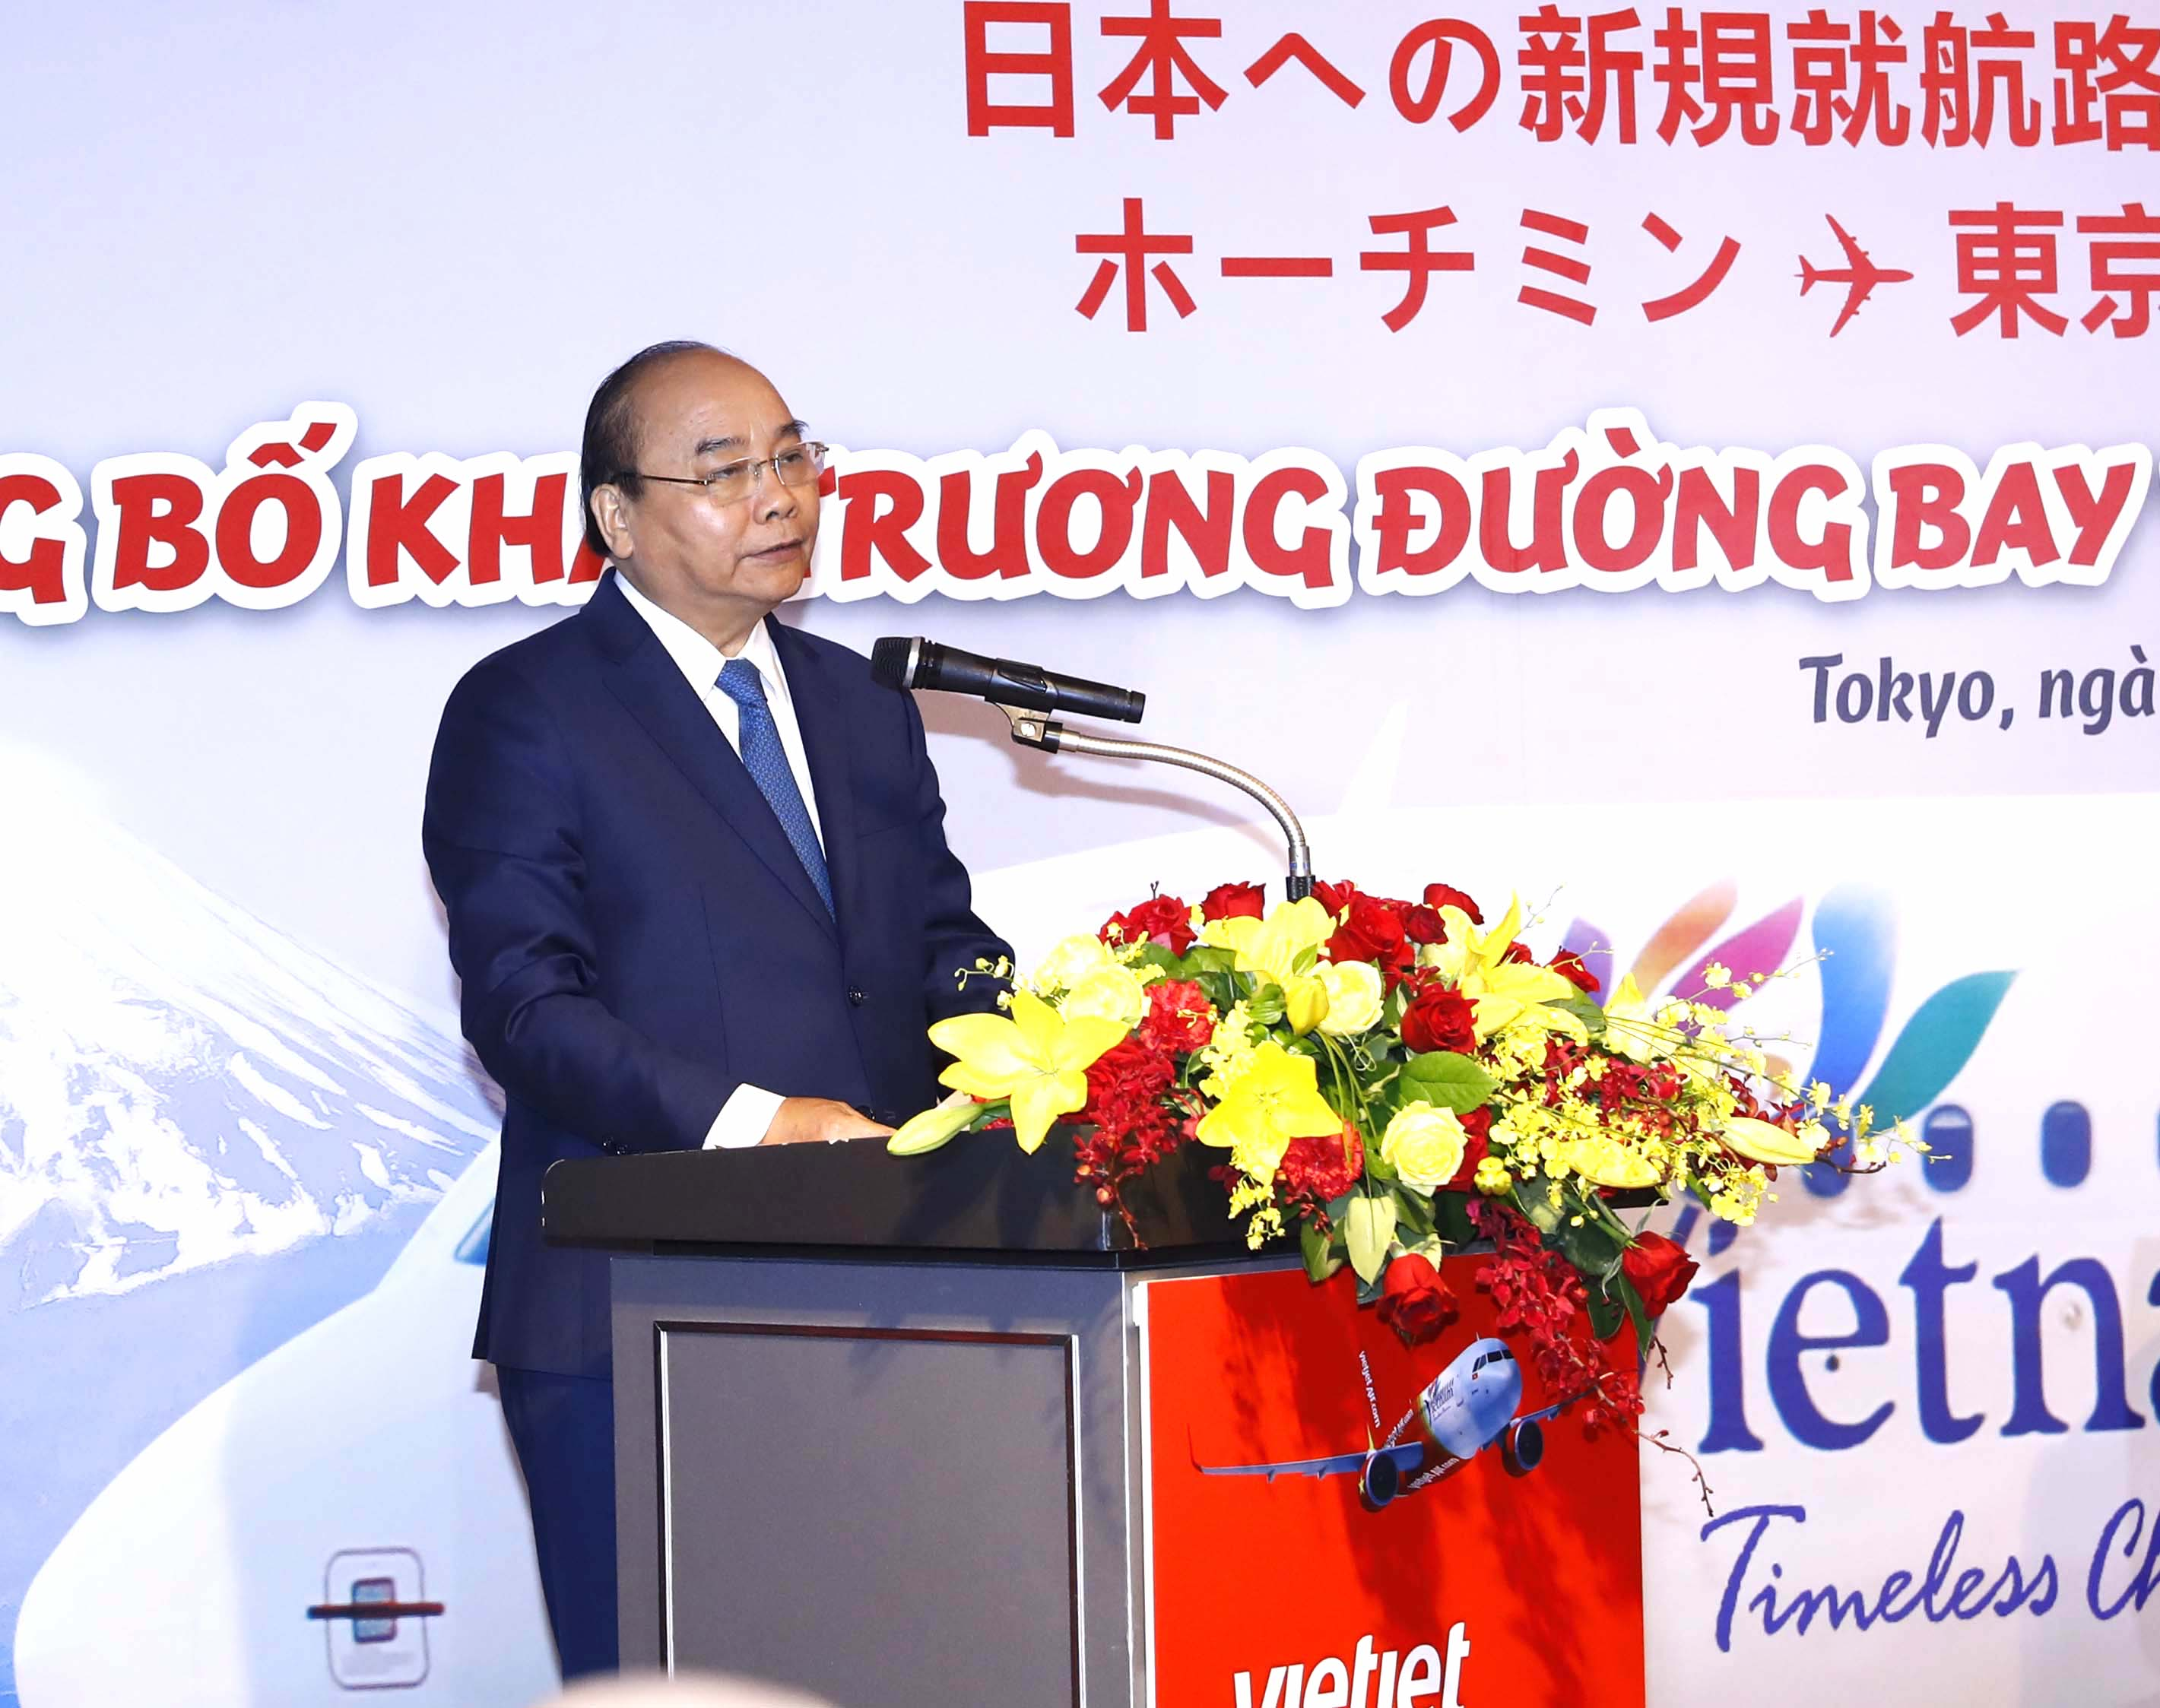 Vietnam's Prime Minister Nguyen Xuan Phuc attends and gives a congratulation remark at Vietjet's ceremony n Tokyo on July 1, 2019. Photo: Vietjet